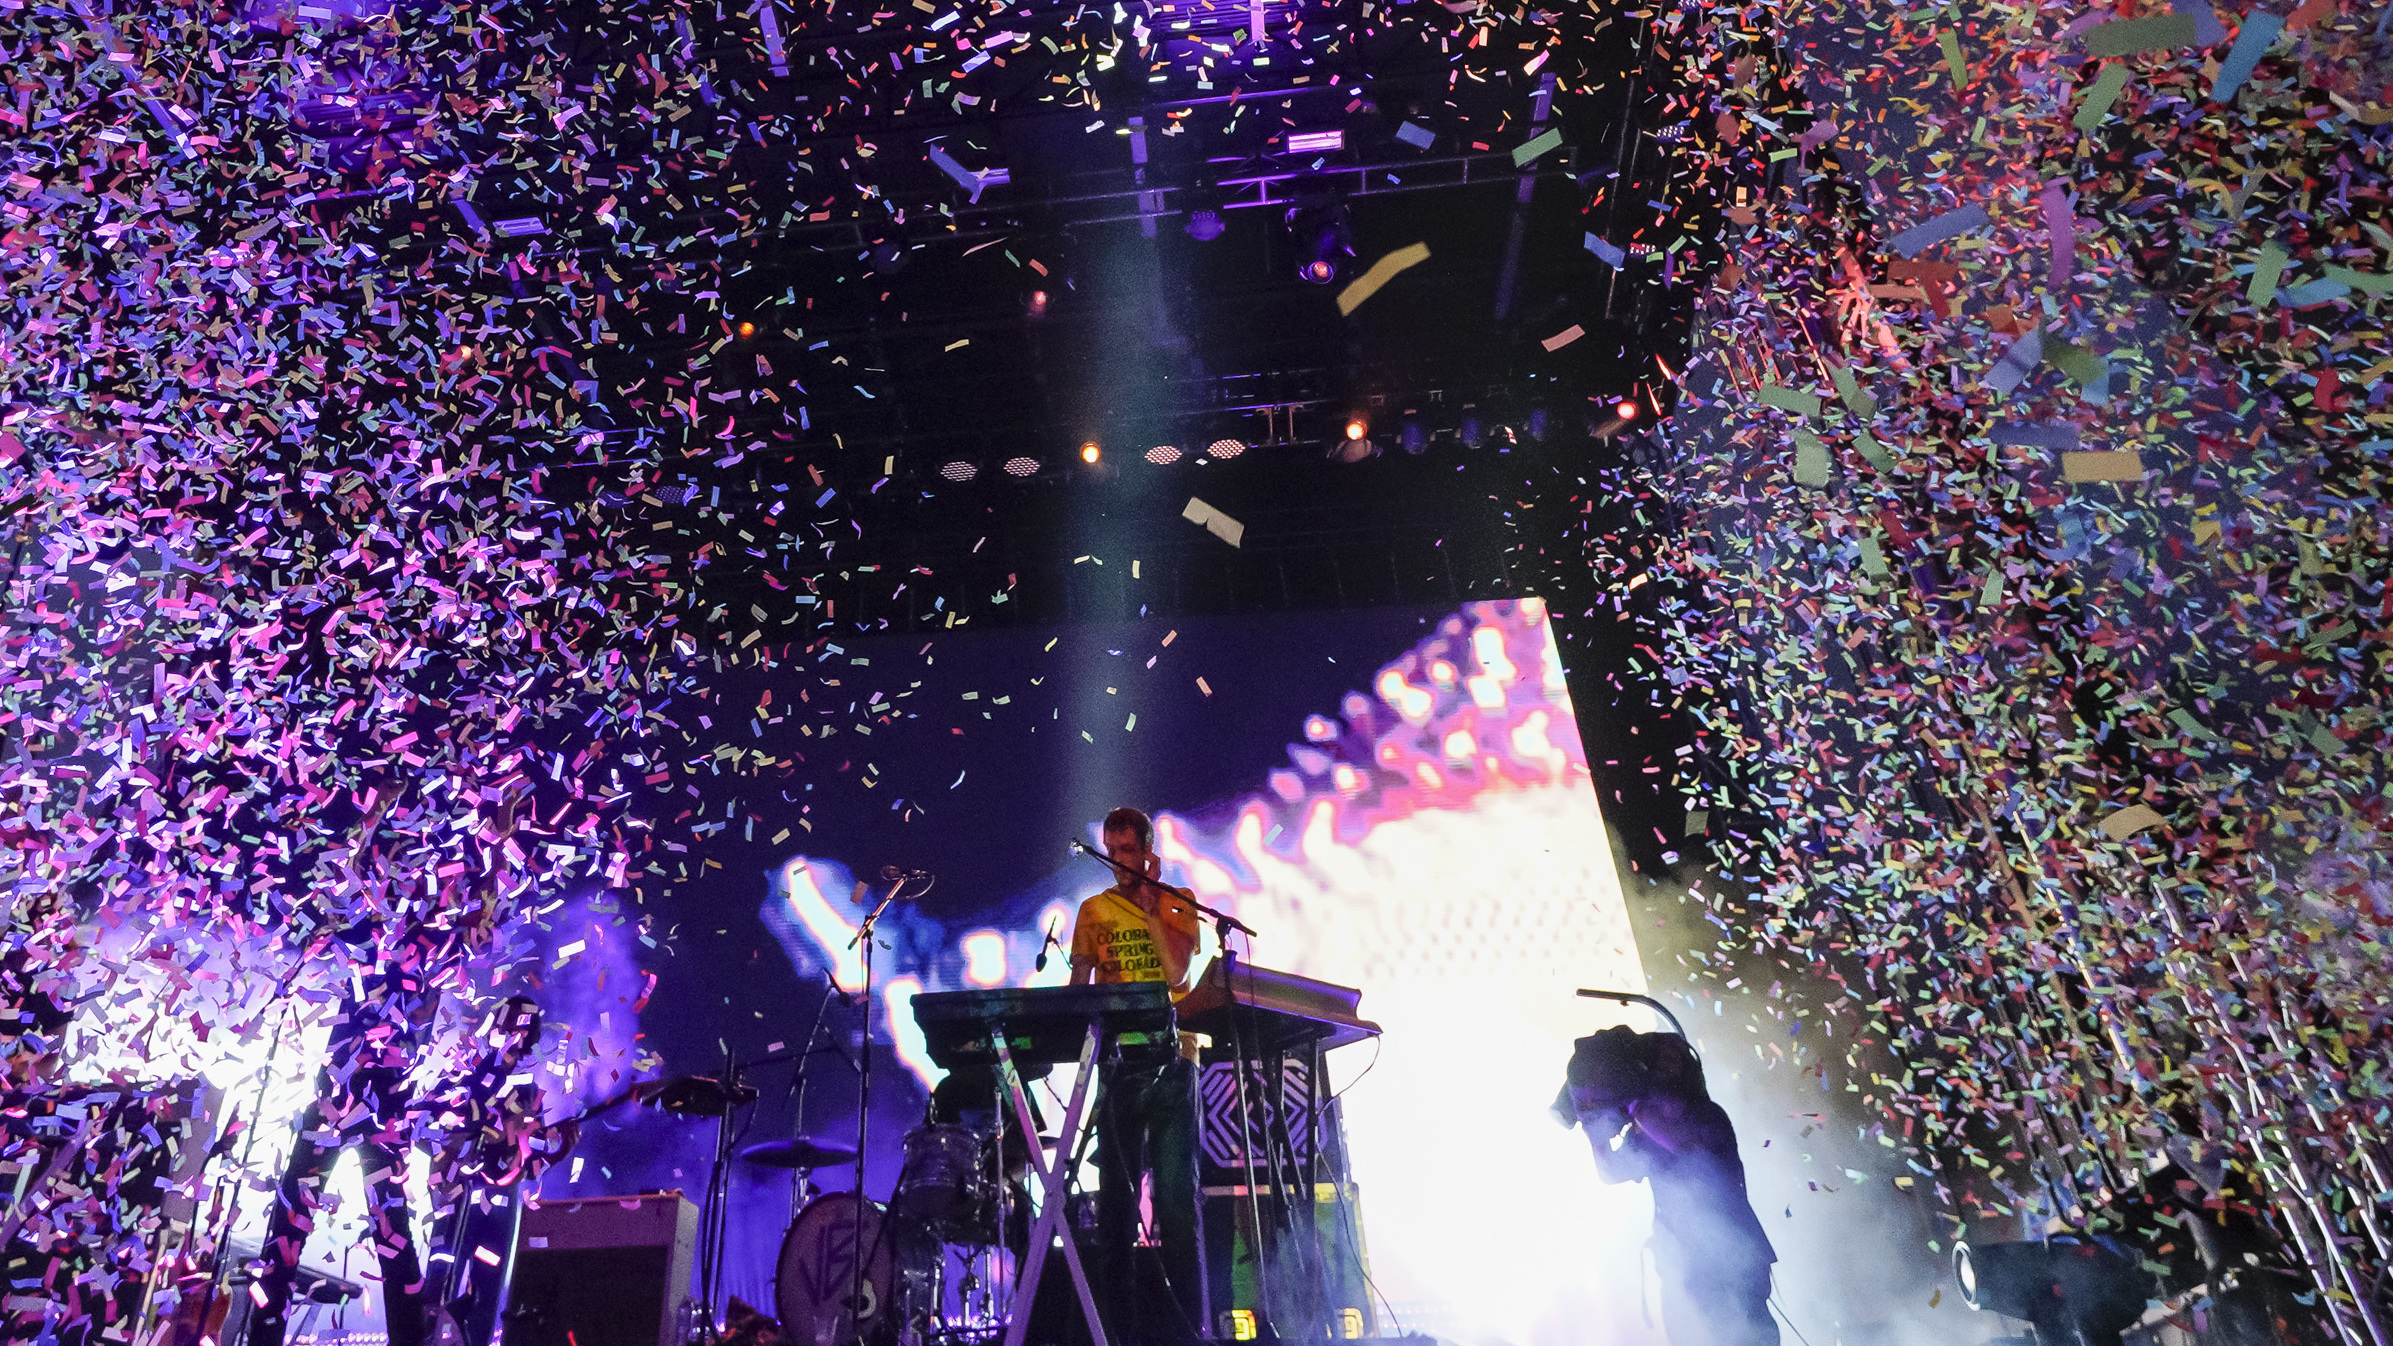 14 Essential Summer Festivals And Concerts, As Chosen By NPR Music Stations